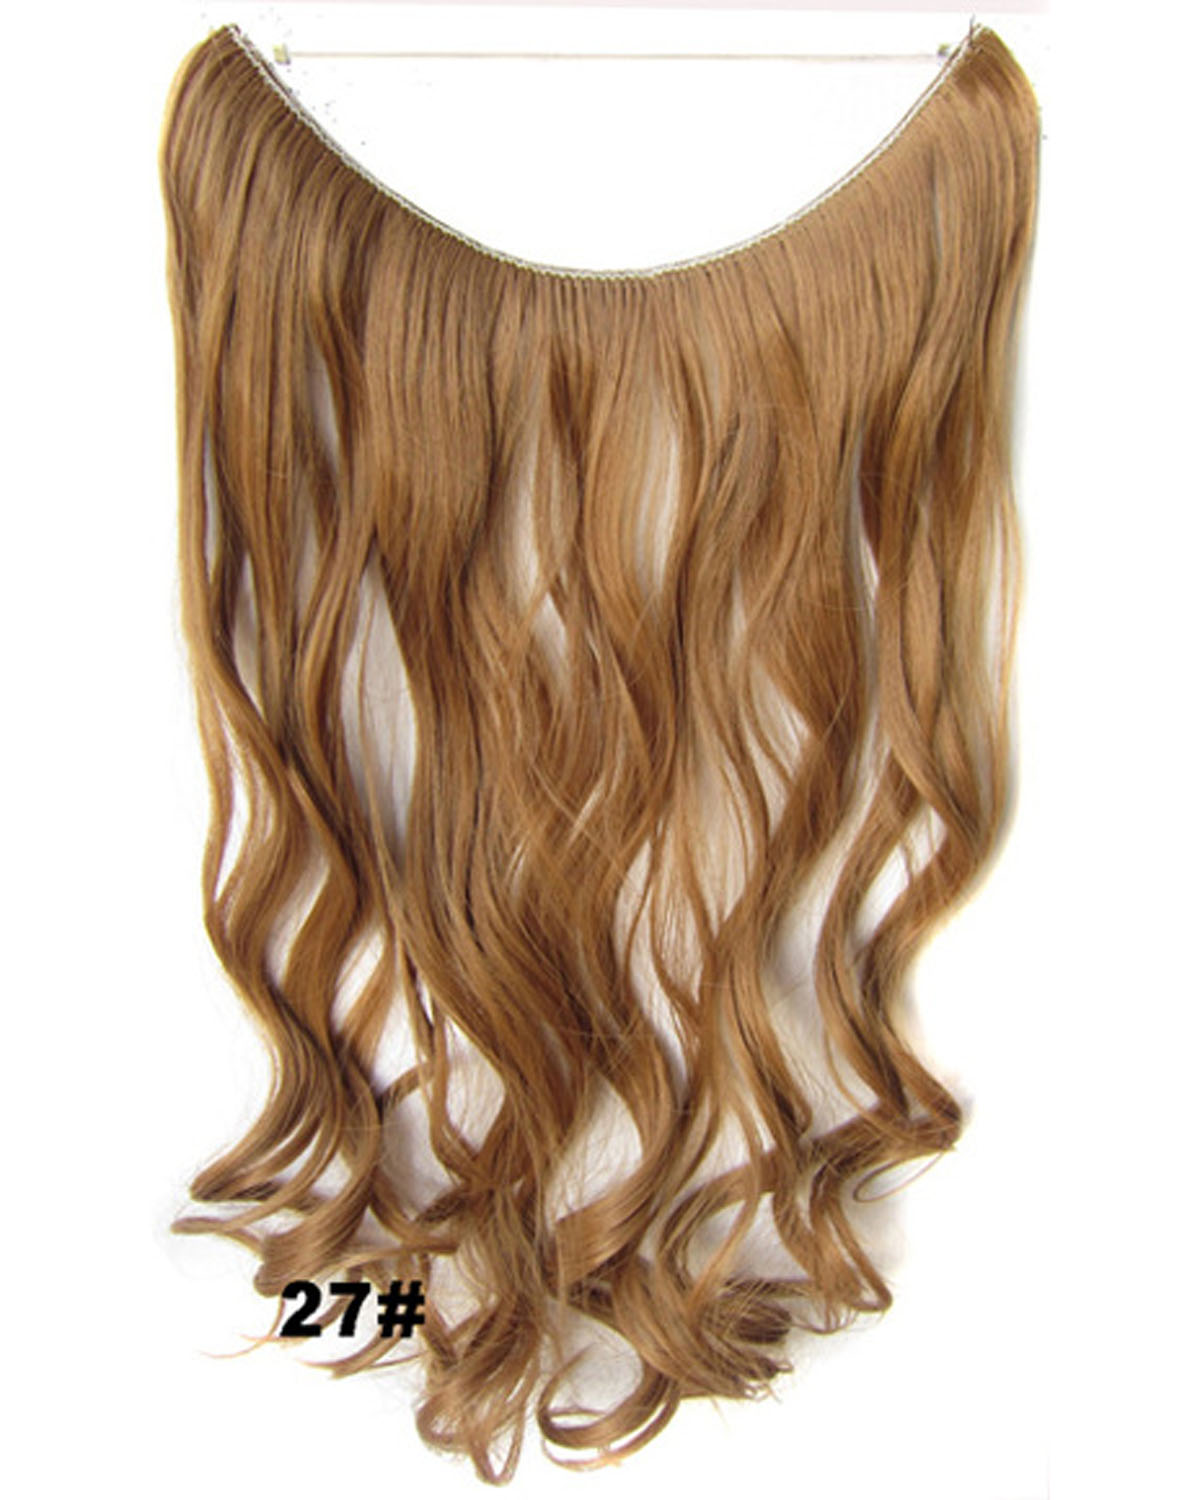 22 Inch High-class Curly and Long Miracle One Piece Miracle Wire Flip in Synthetic Hair Extension 27#